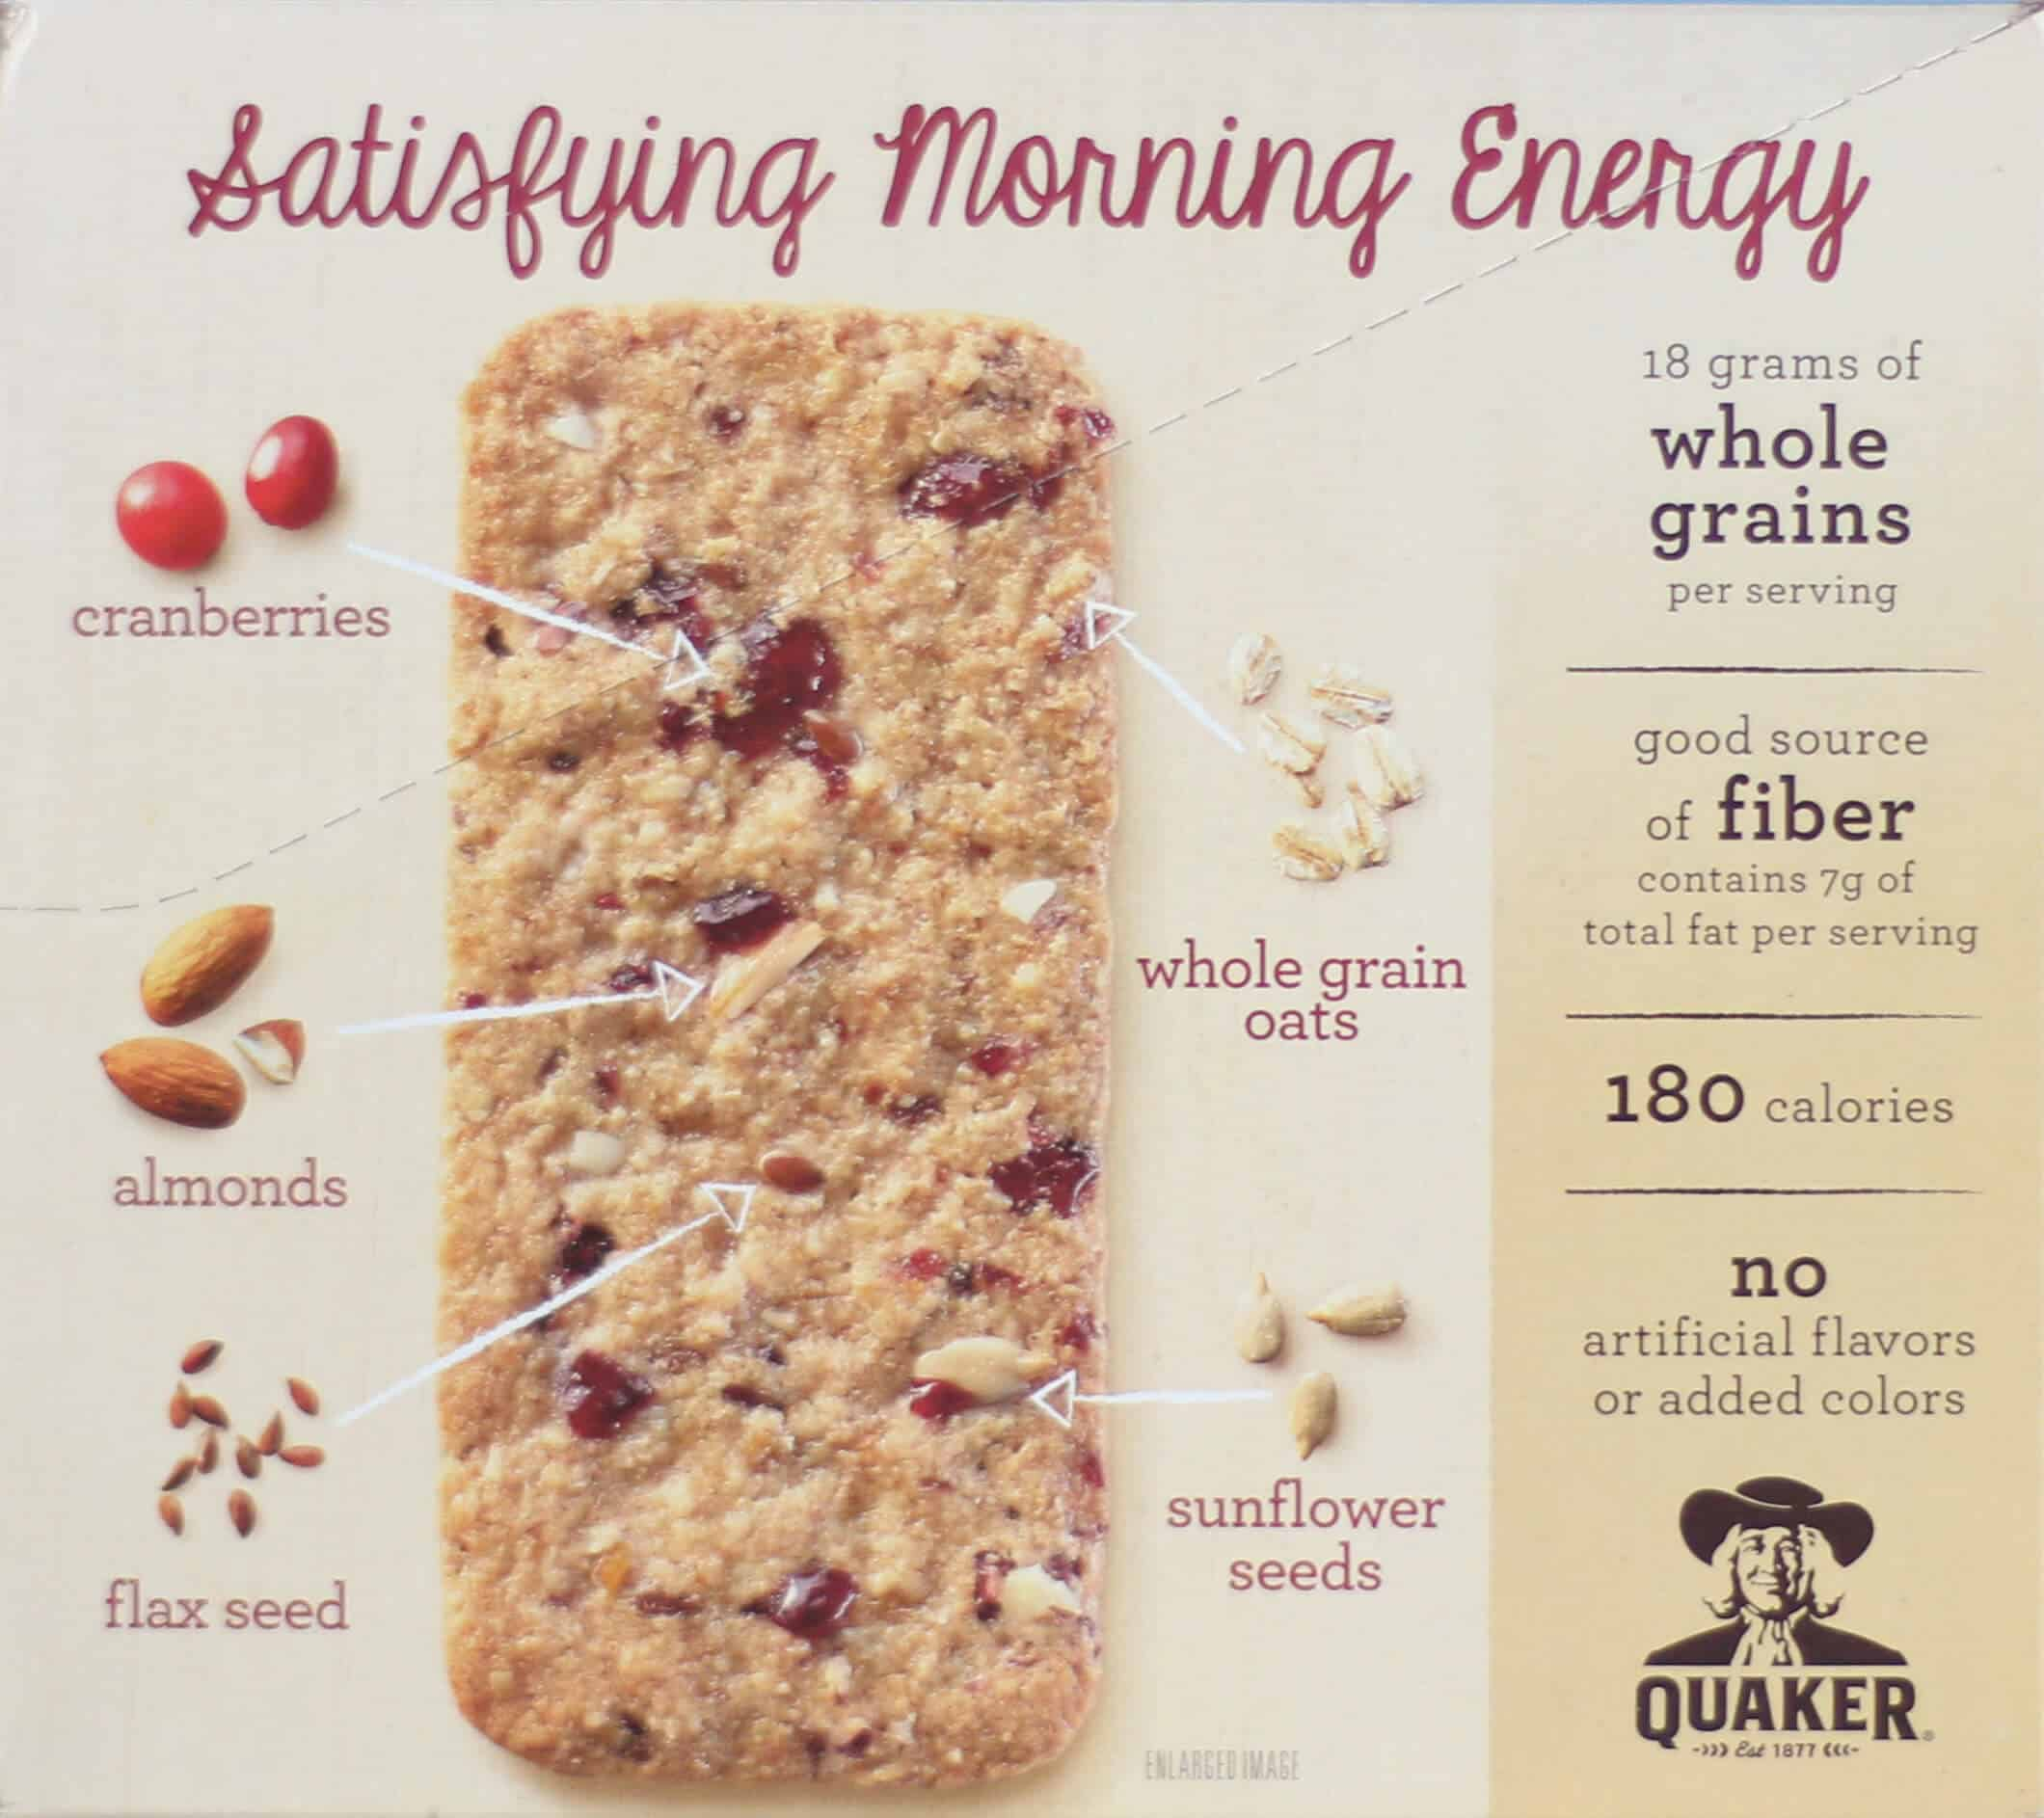 Quaker Breakfast Flats like to talk about all the great ingredients they're made with, but they leave out one key fact. They've got tons of added sugar in them!